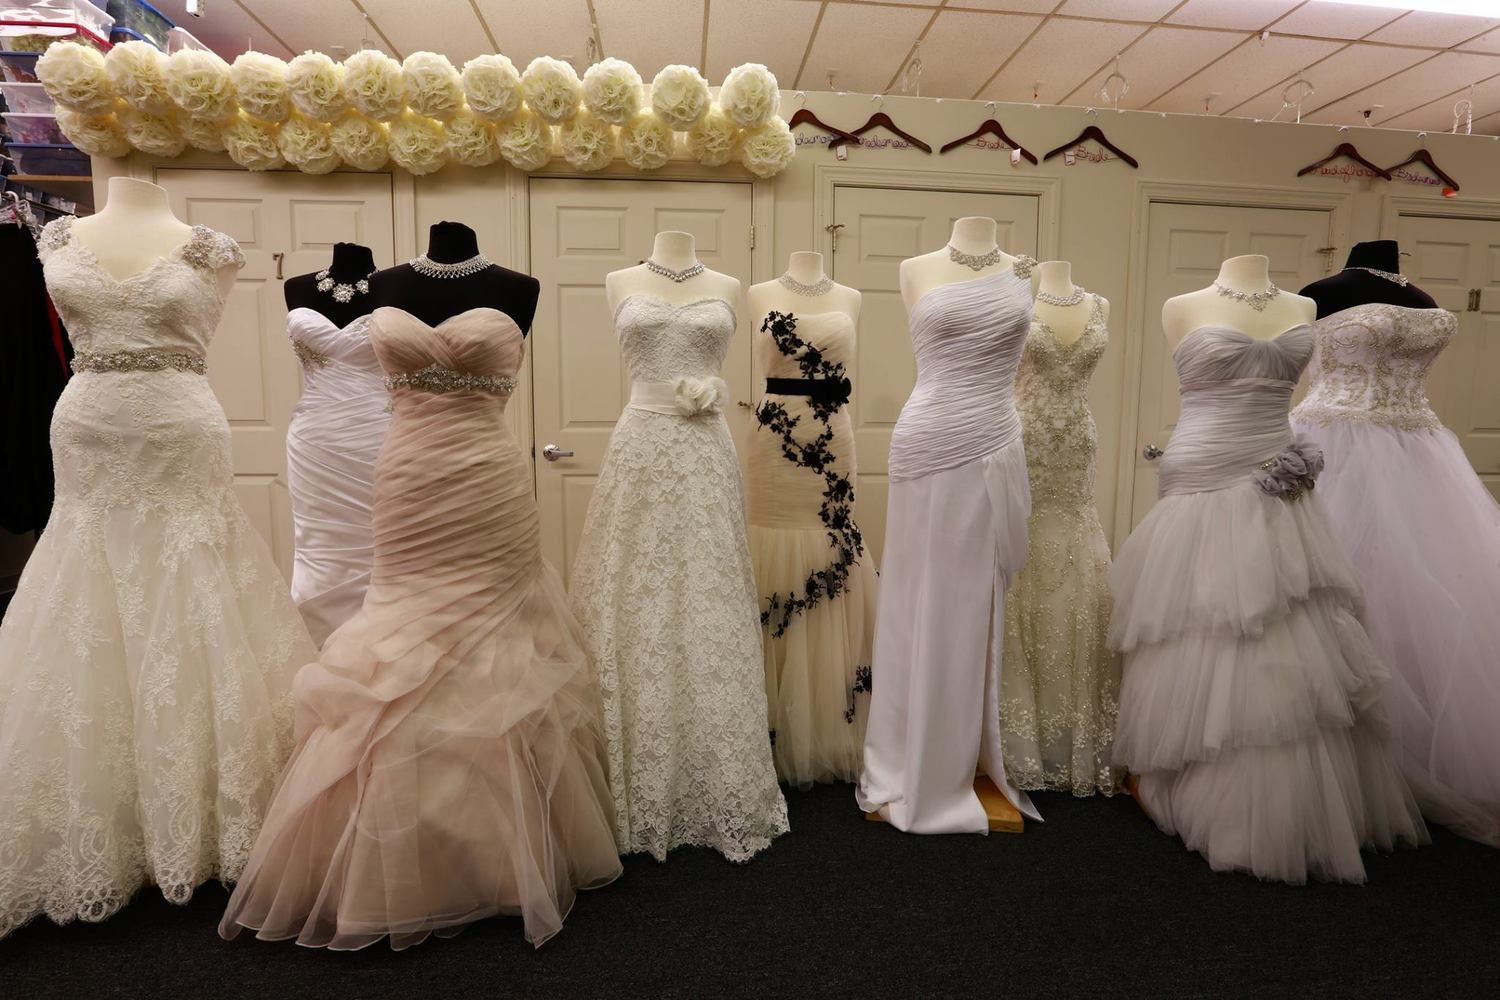 99 Consignment Shops For Wedding Dresses Wedding Dresses For The